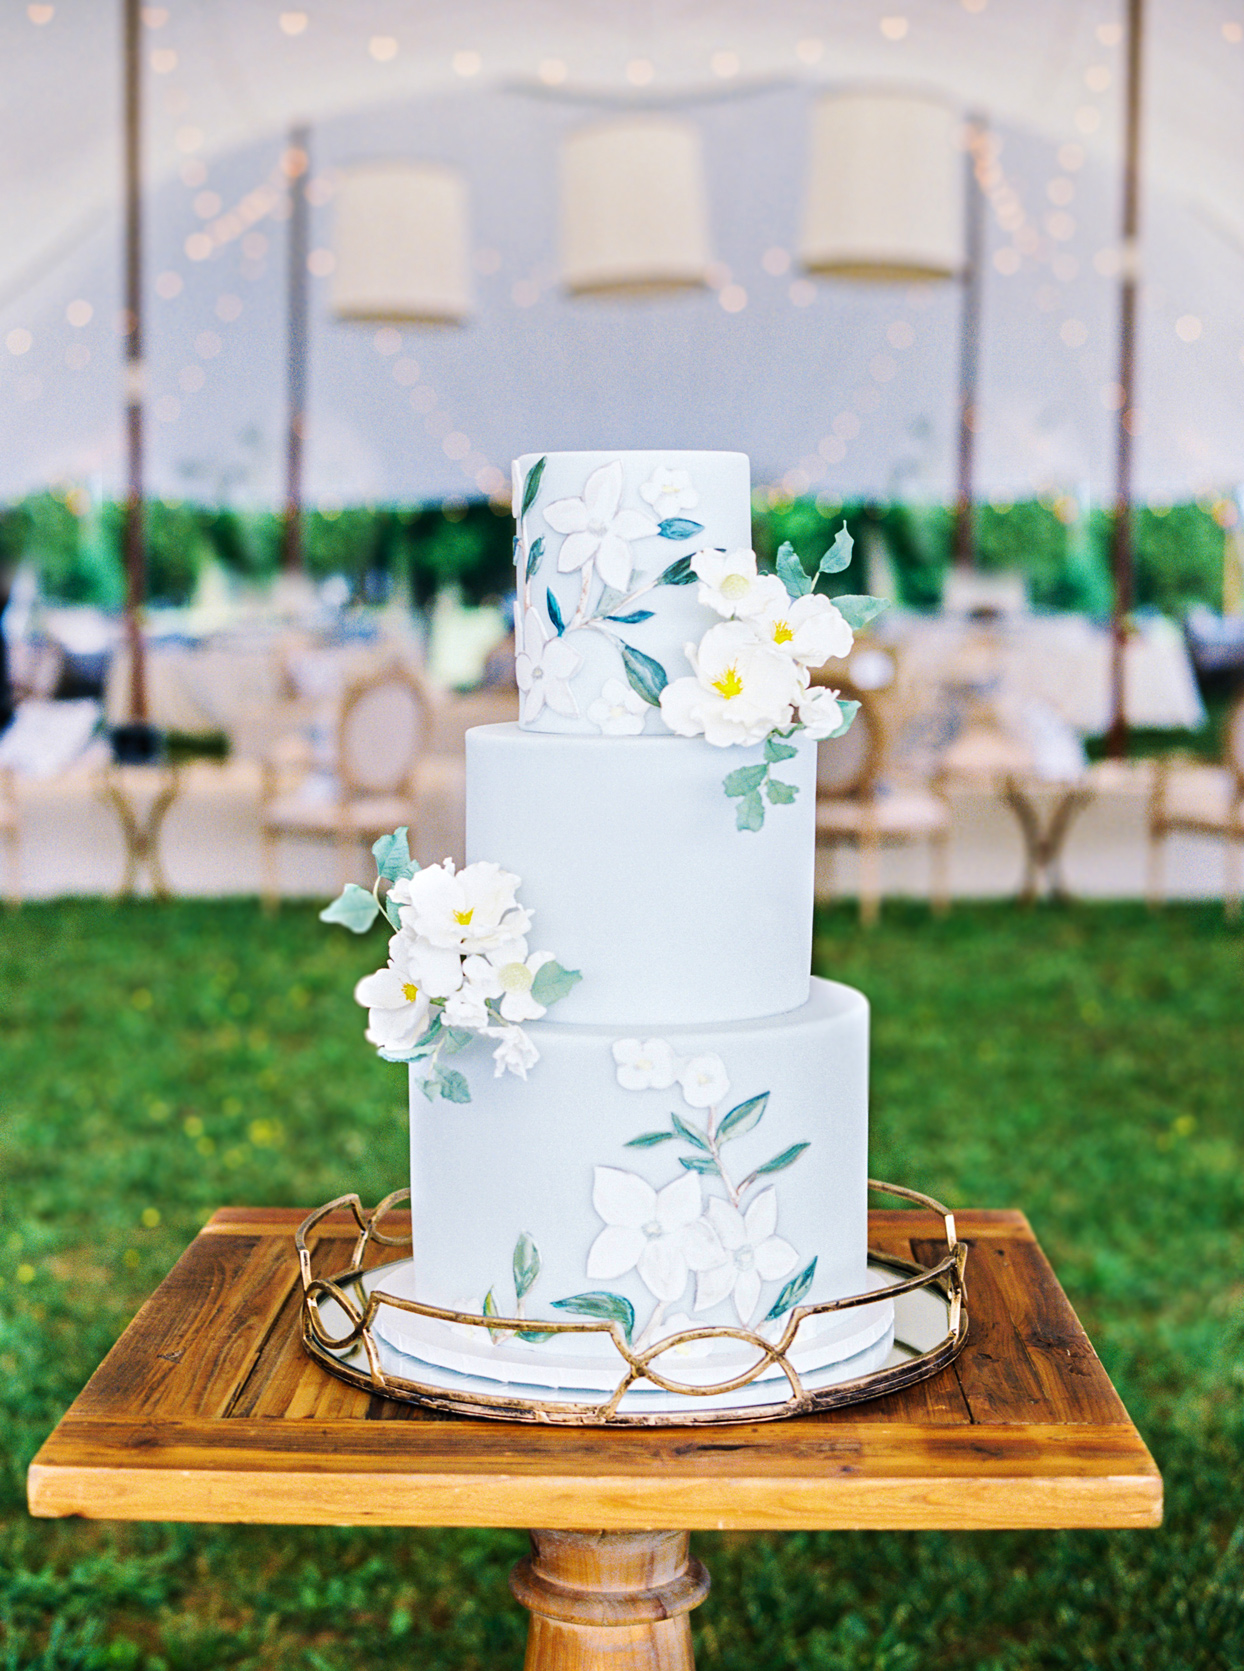 three tiered pale blue frosted floral design wedding cake on wooden stand